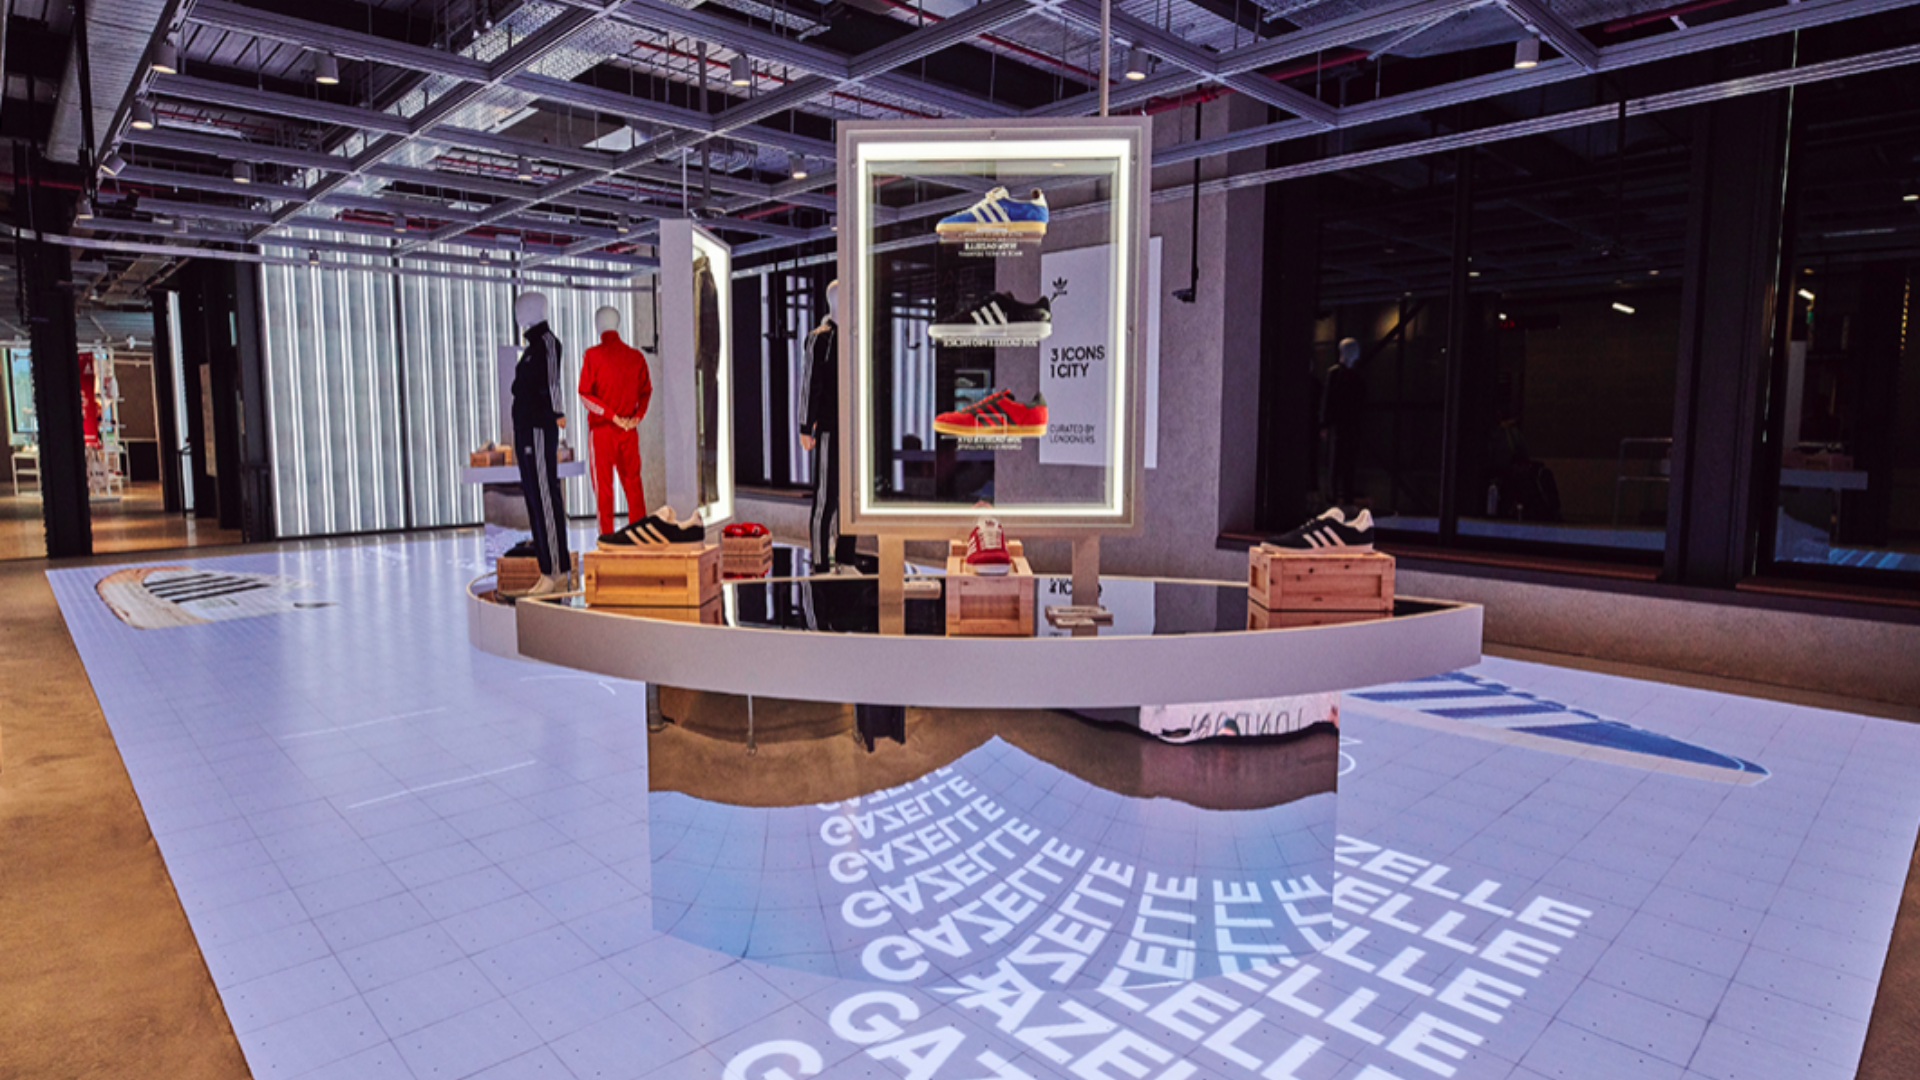 The Adidas LDN Flagship unveiled in October 2019 presents a whole new vision of store design: sustainable, digital, creative, community minded & with local flavour.